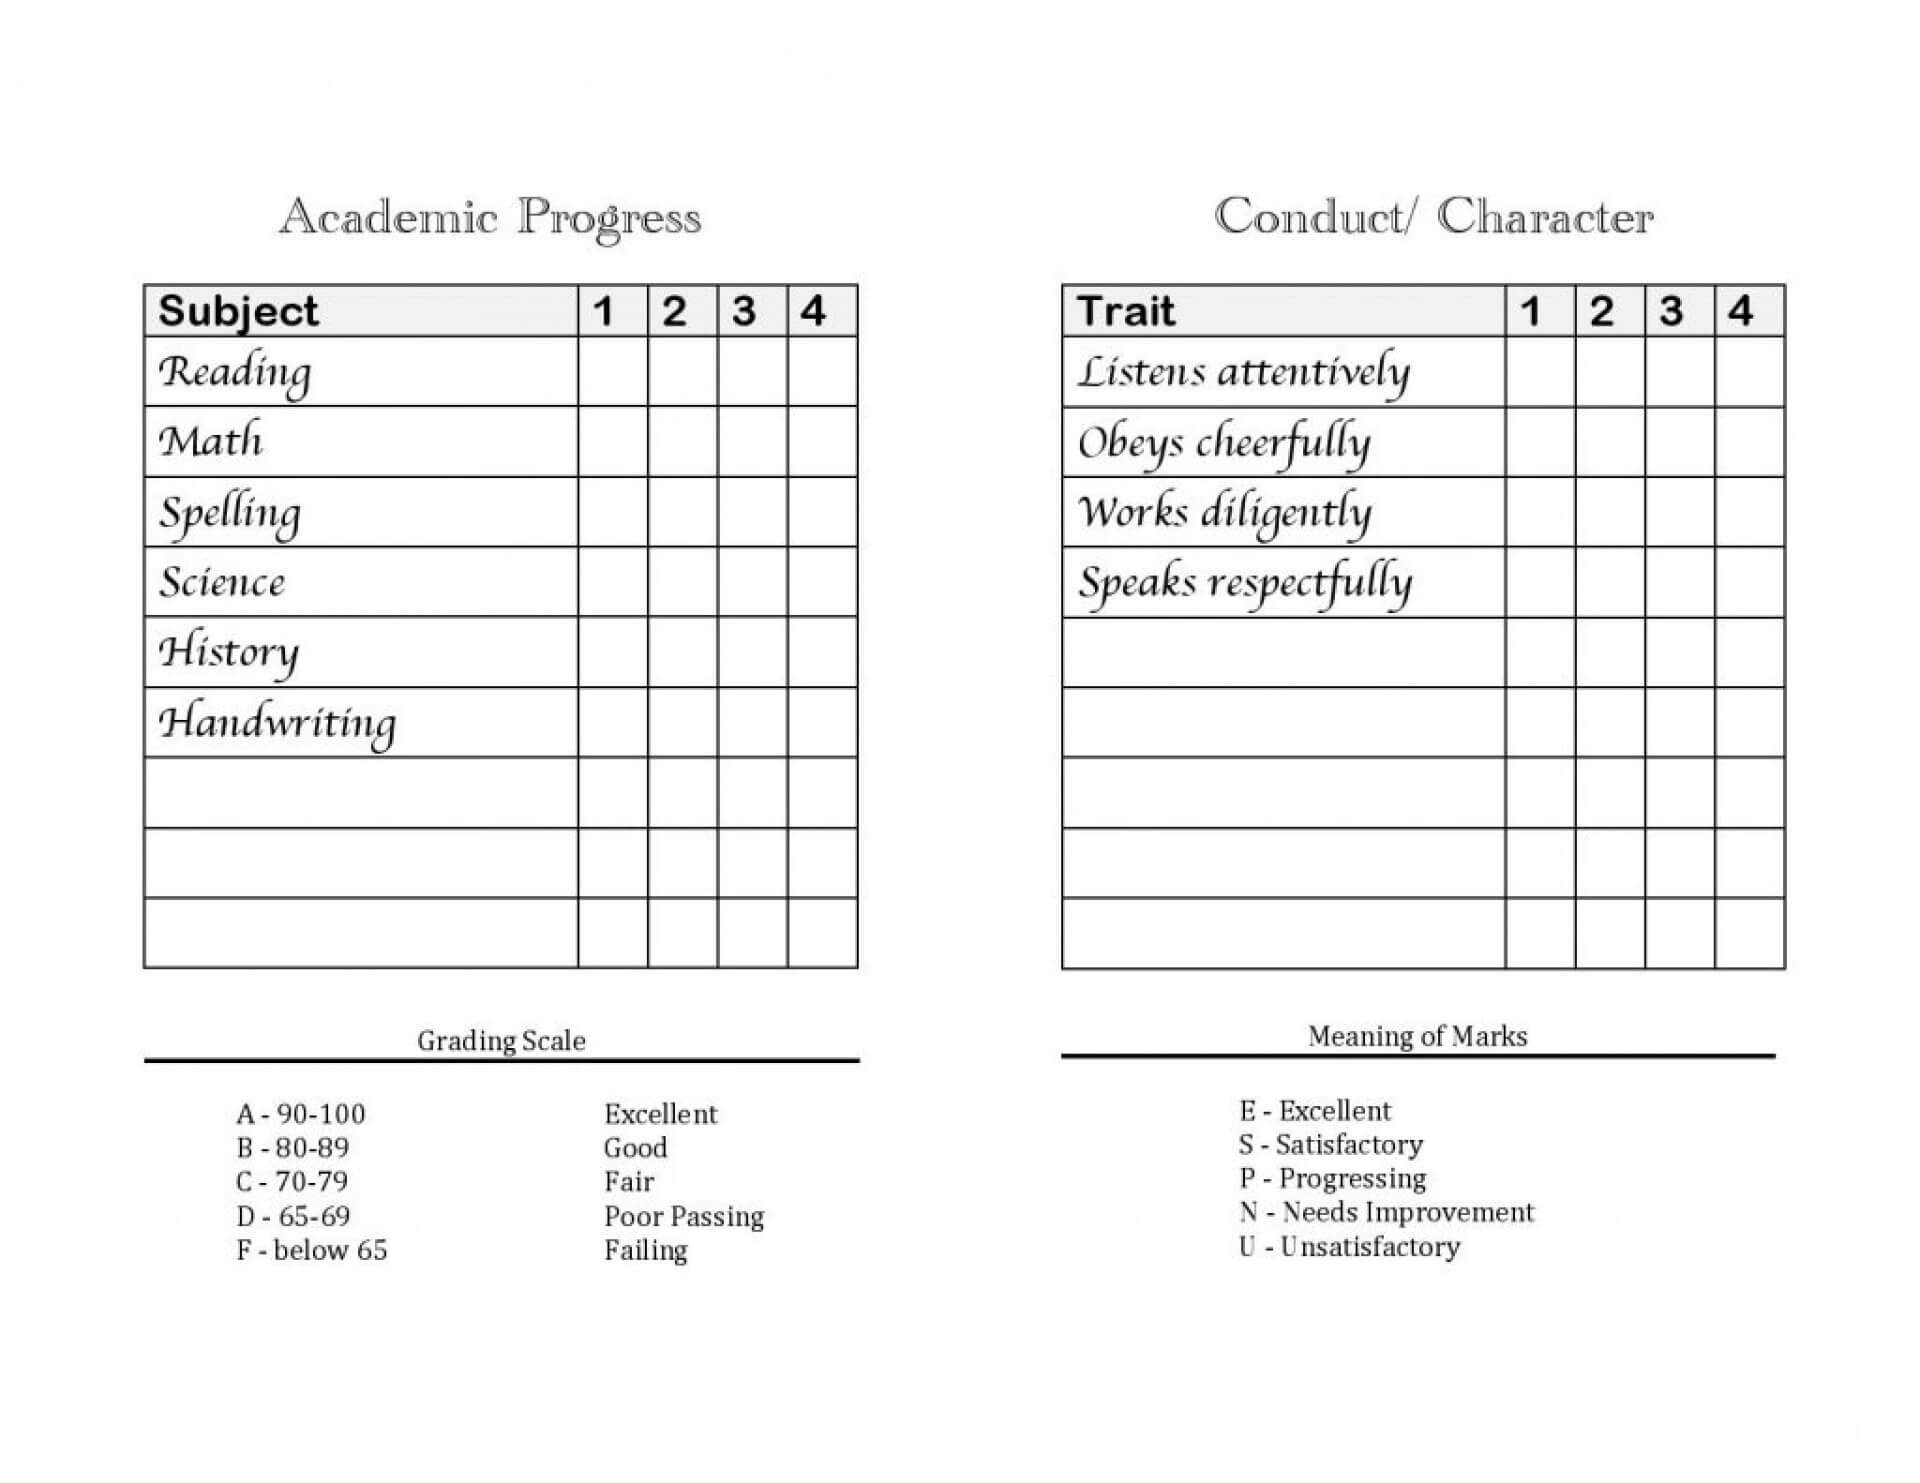 036 Free Download Report Card Template For Homeschoolers With Regard To Character Report Card Template